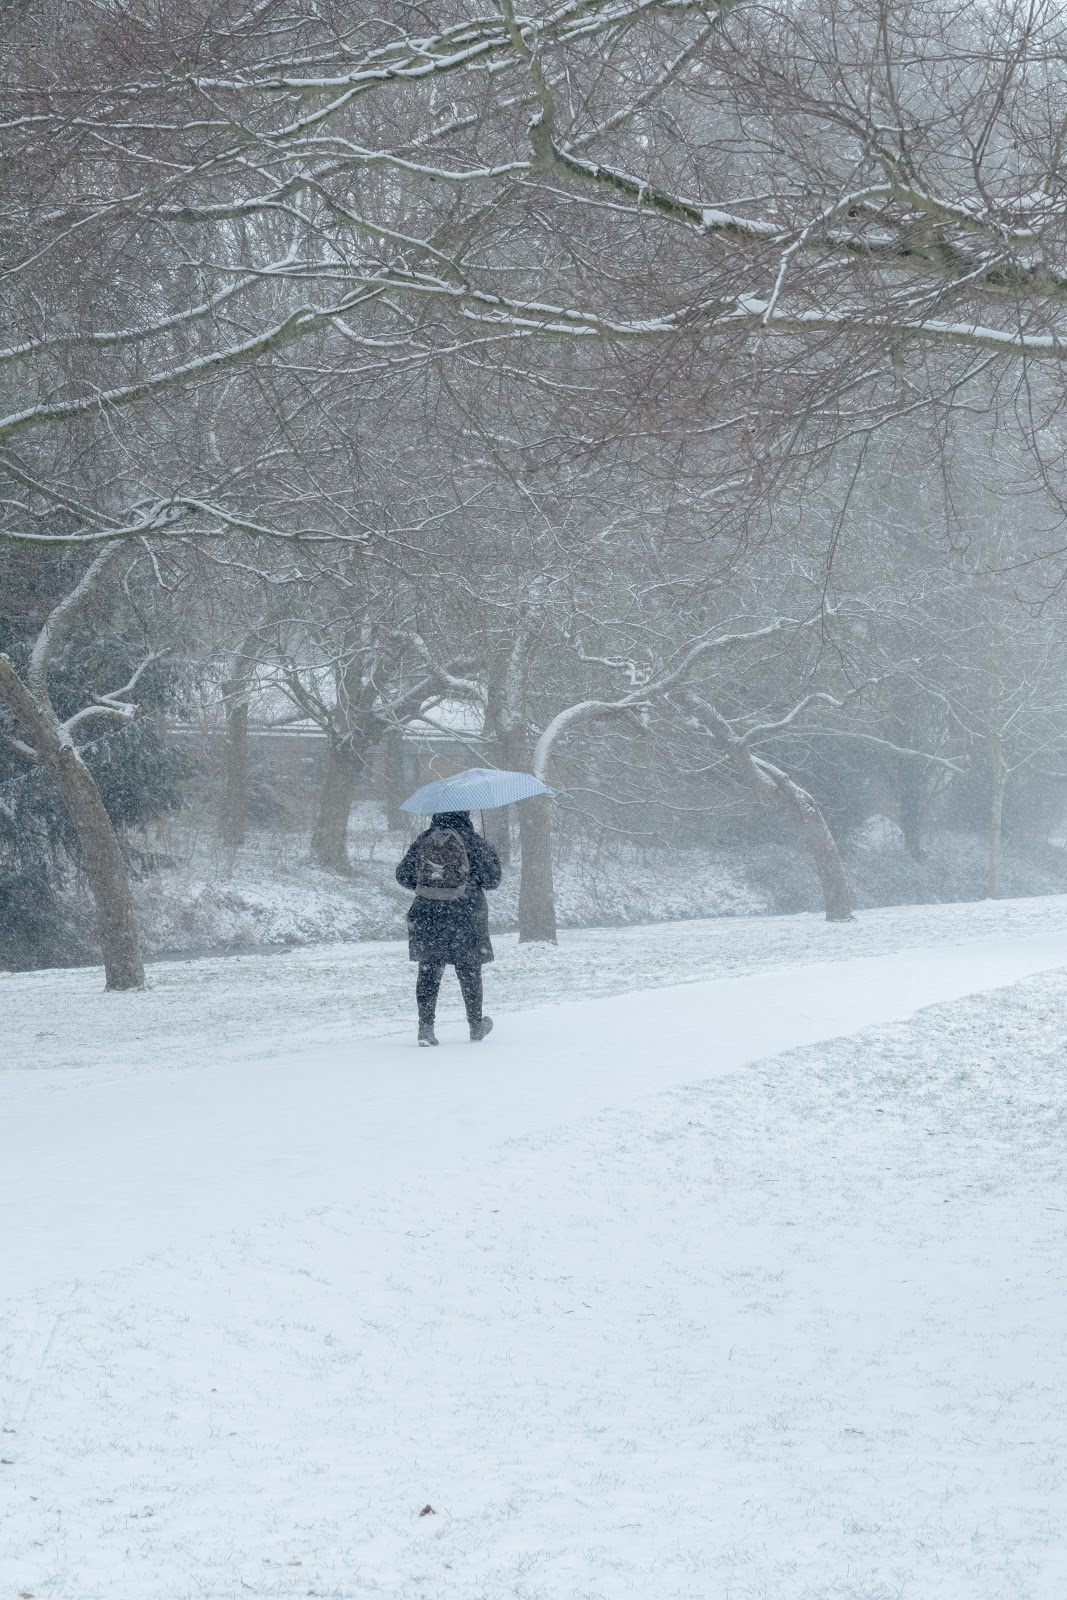 A person walks in a snowstorm.